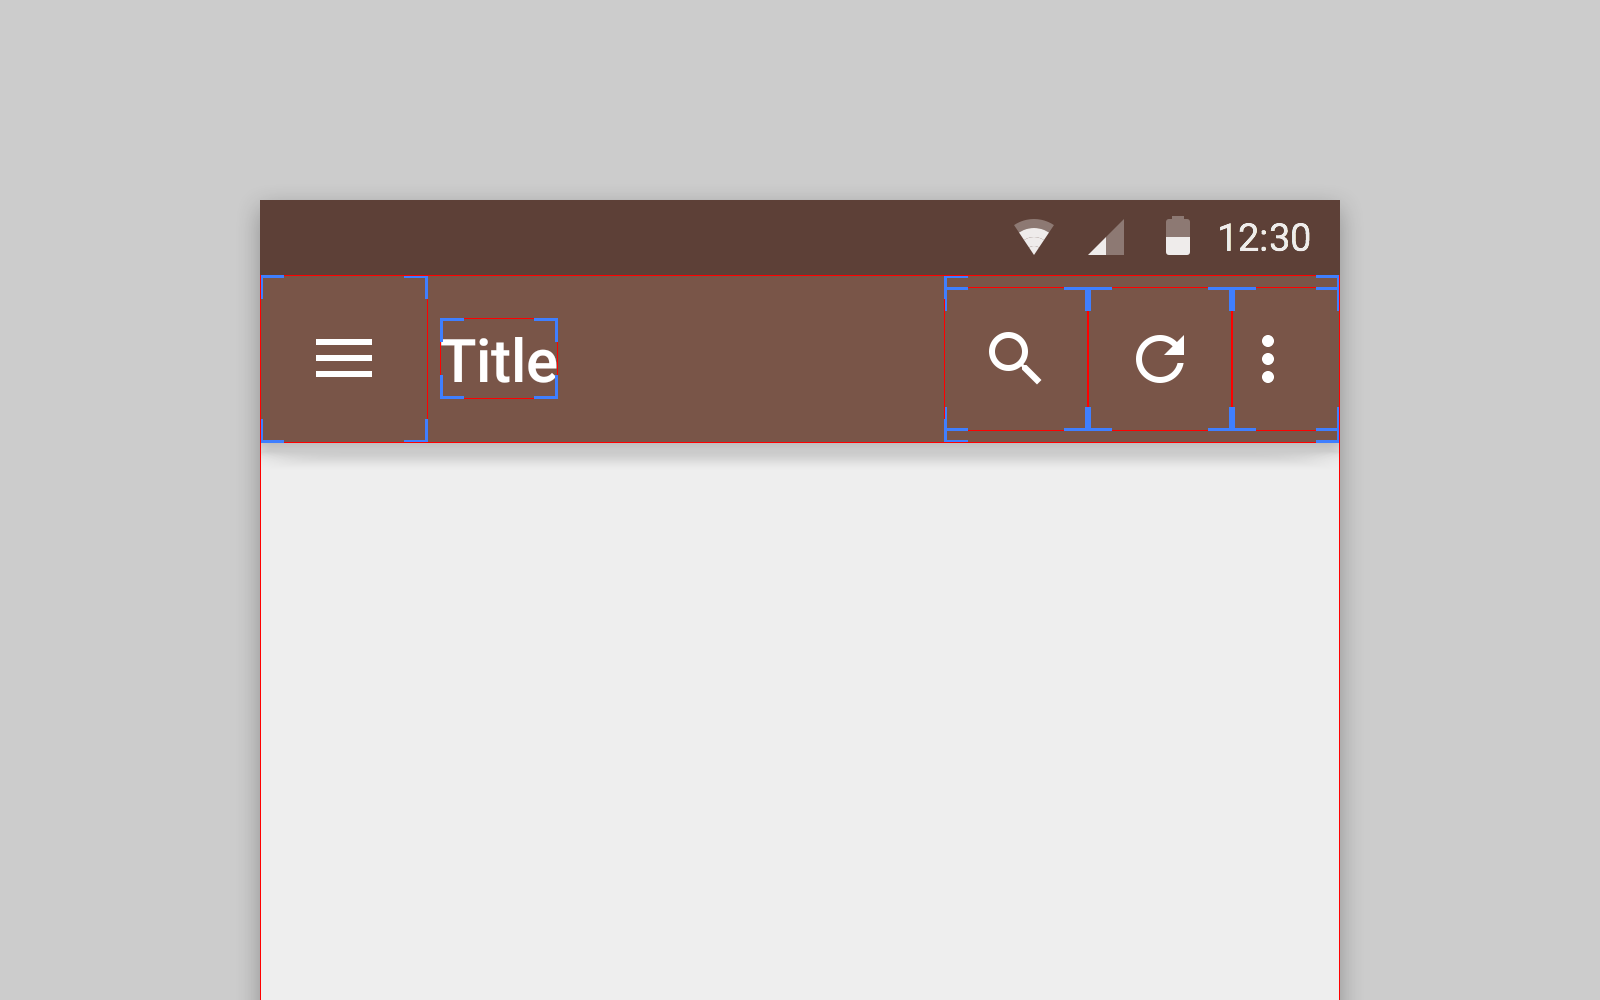 How To Make Android Toolbar Follow Material Design Guidelines